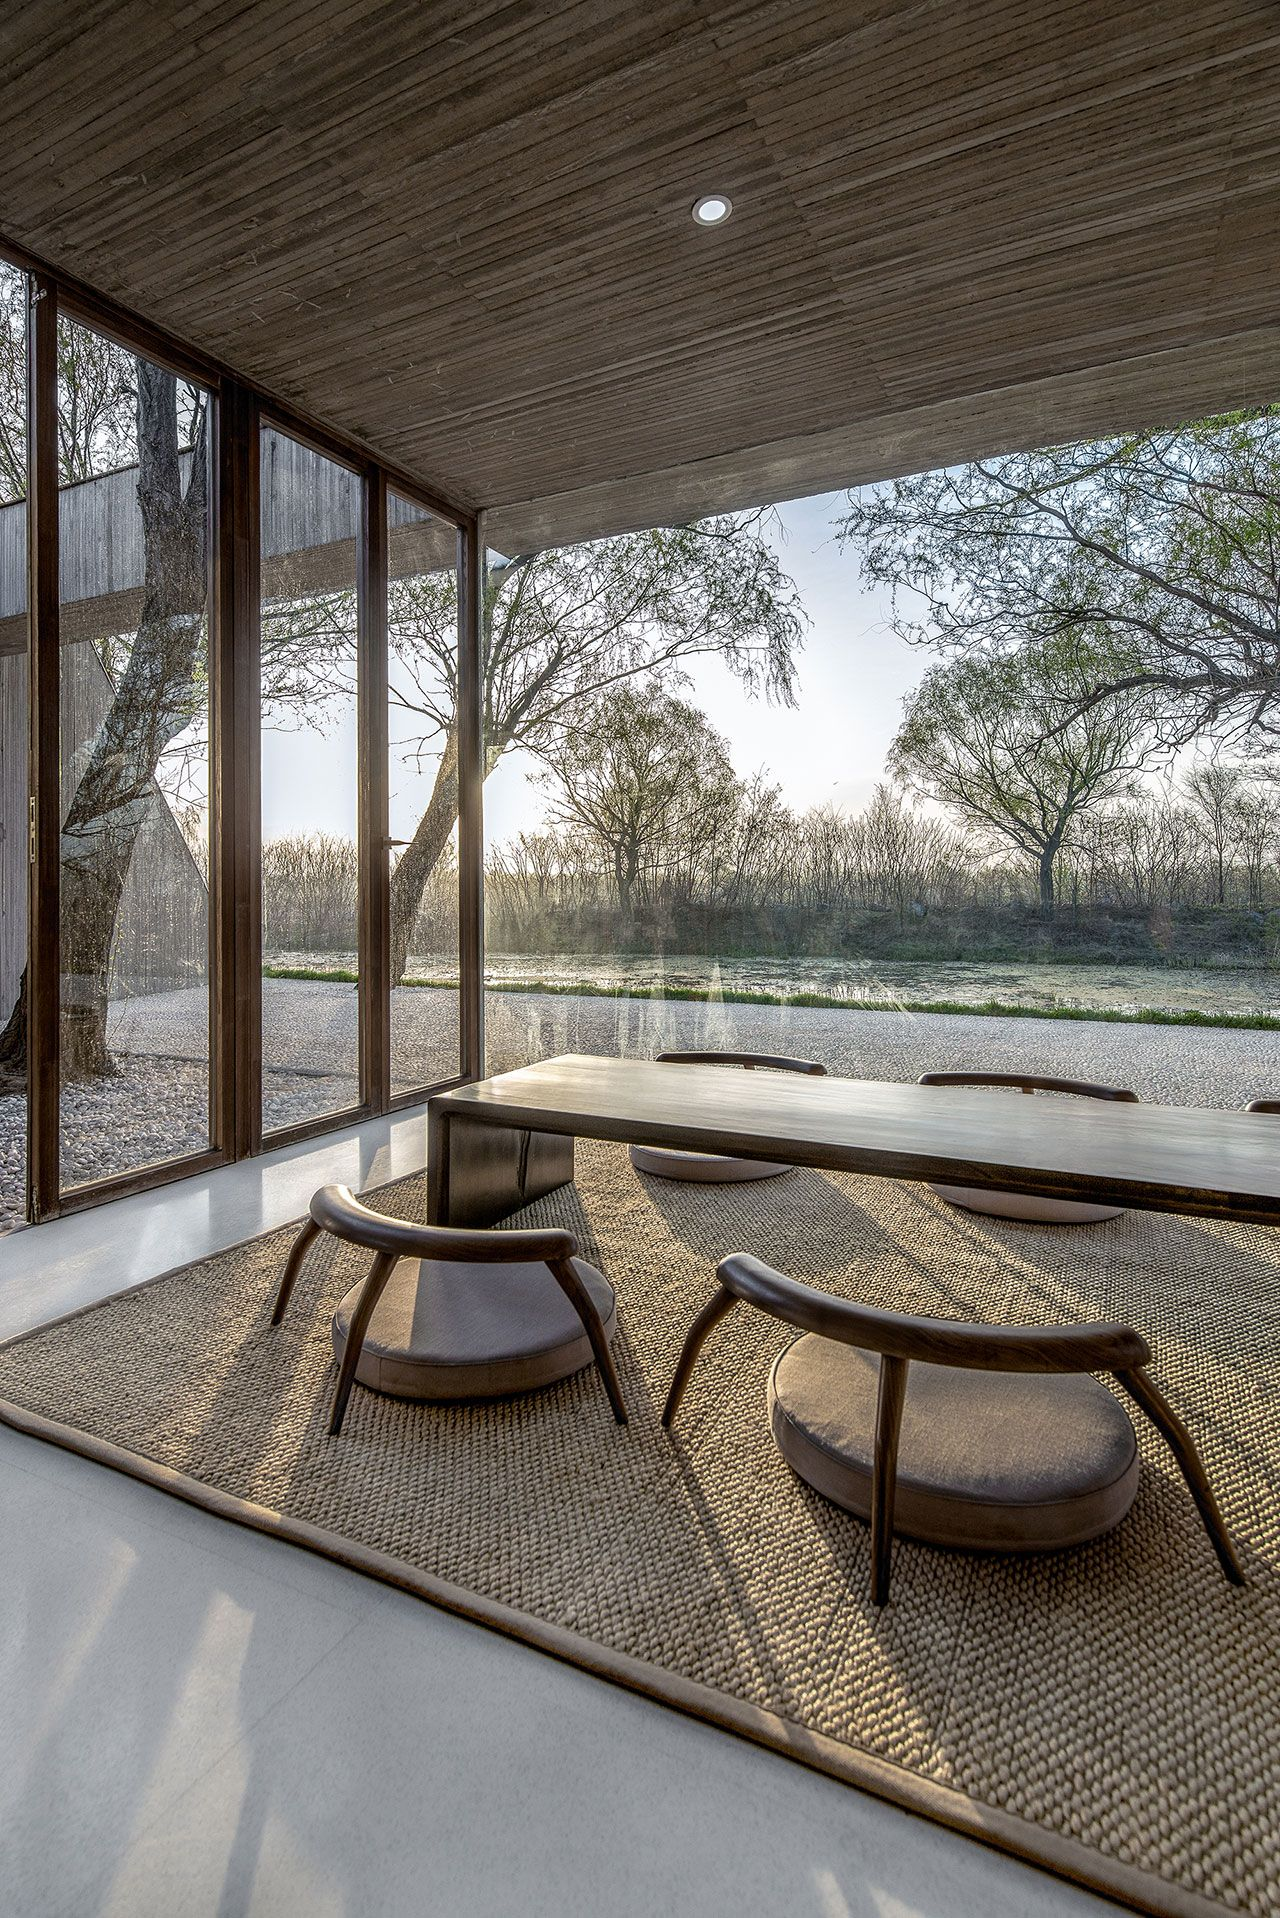 The Nature Of Meditation Tangshans Buddhist Shrine By Archstudio ChairMeditation RoomsInspiration WallInterior Design